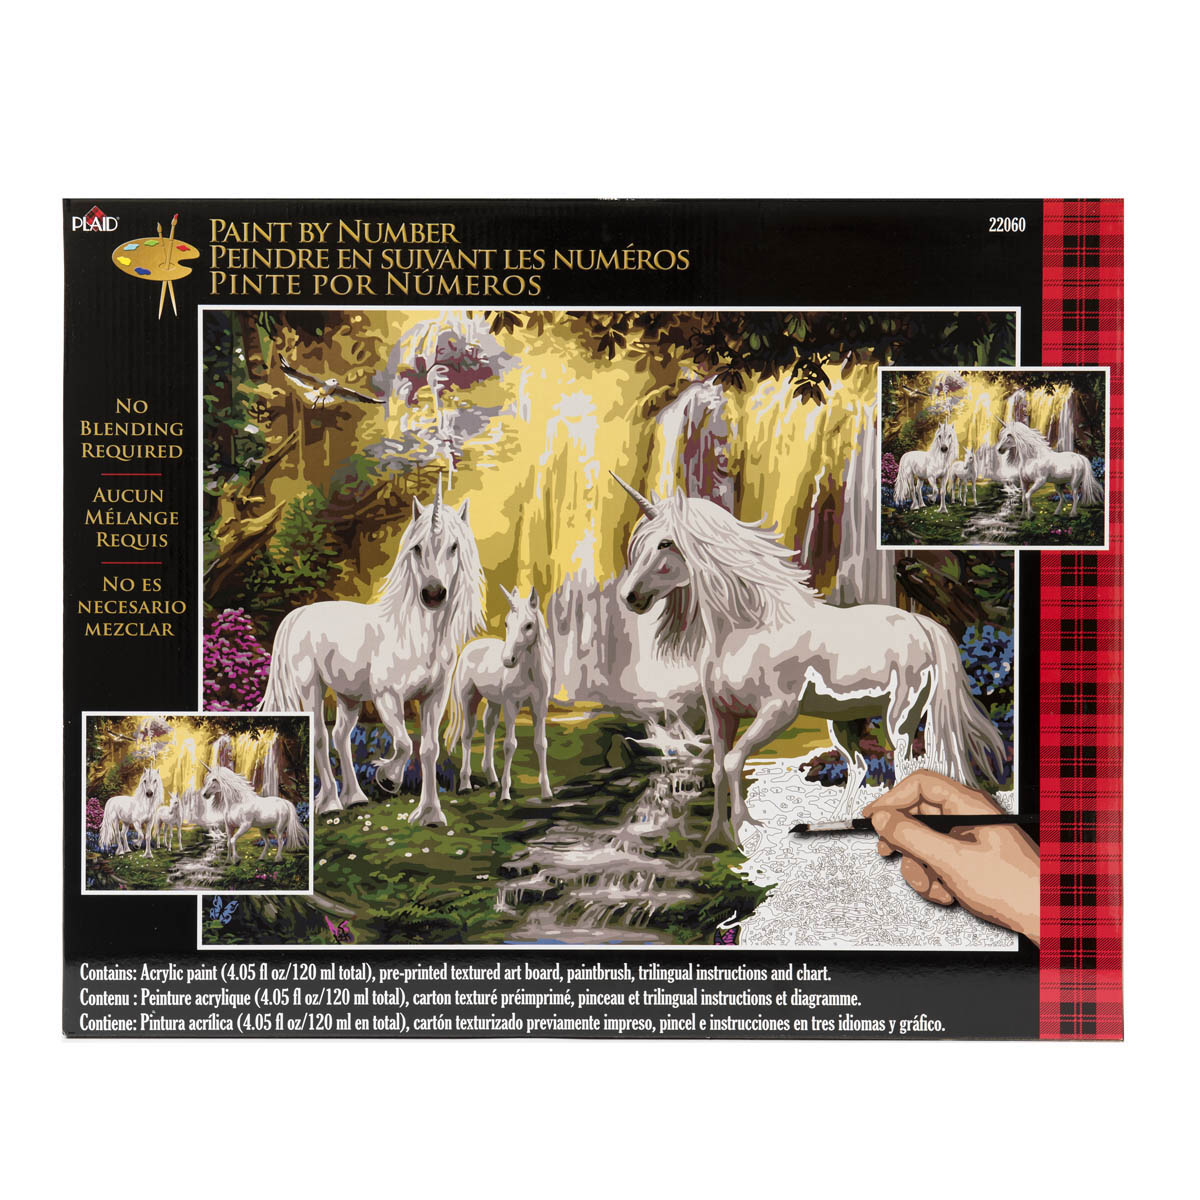 Plaid ® Paint by Number - Waterfall Glade Unicorns